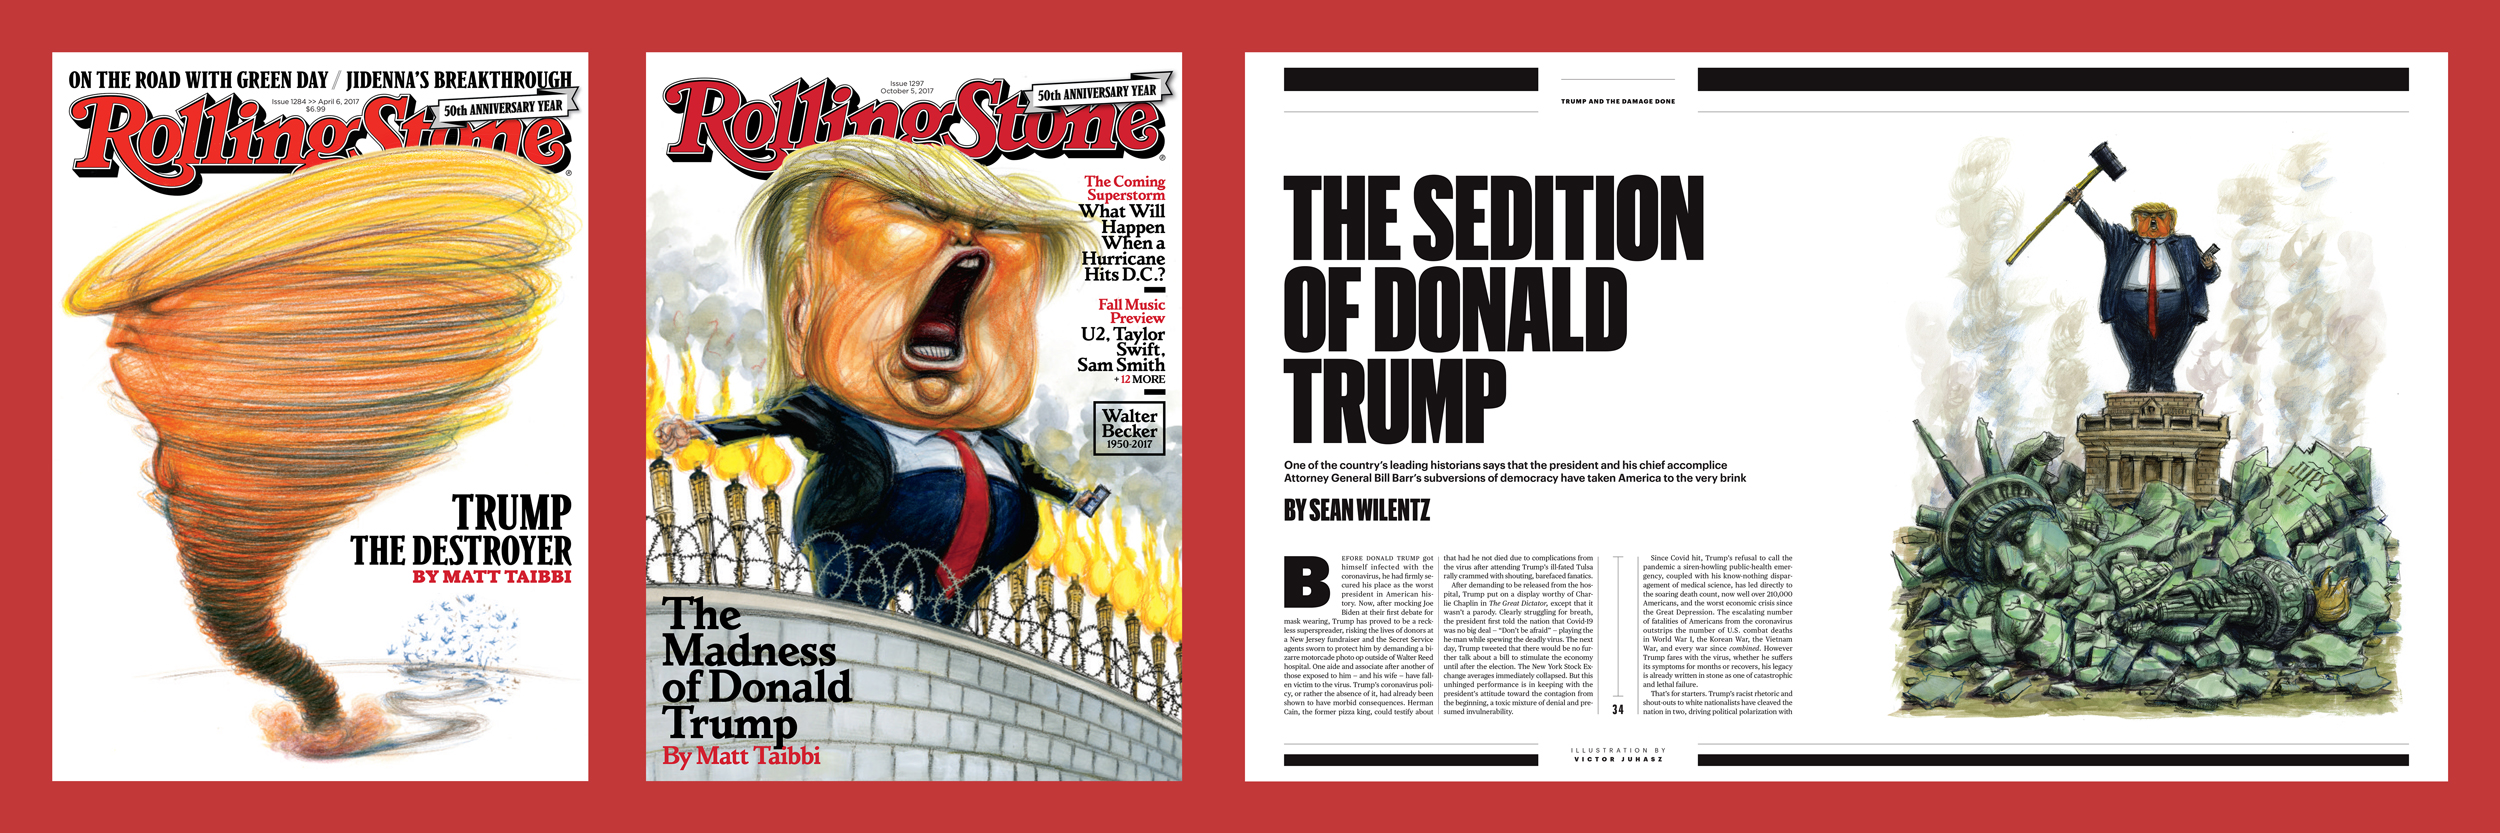 MeidasTouch accused Rolling Stone of pushing a pro-Trump agenda. Nothing could be further from the truth